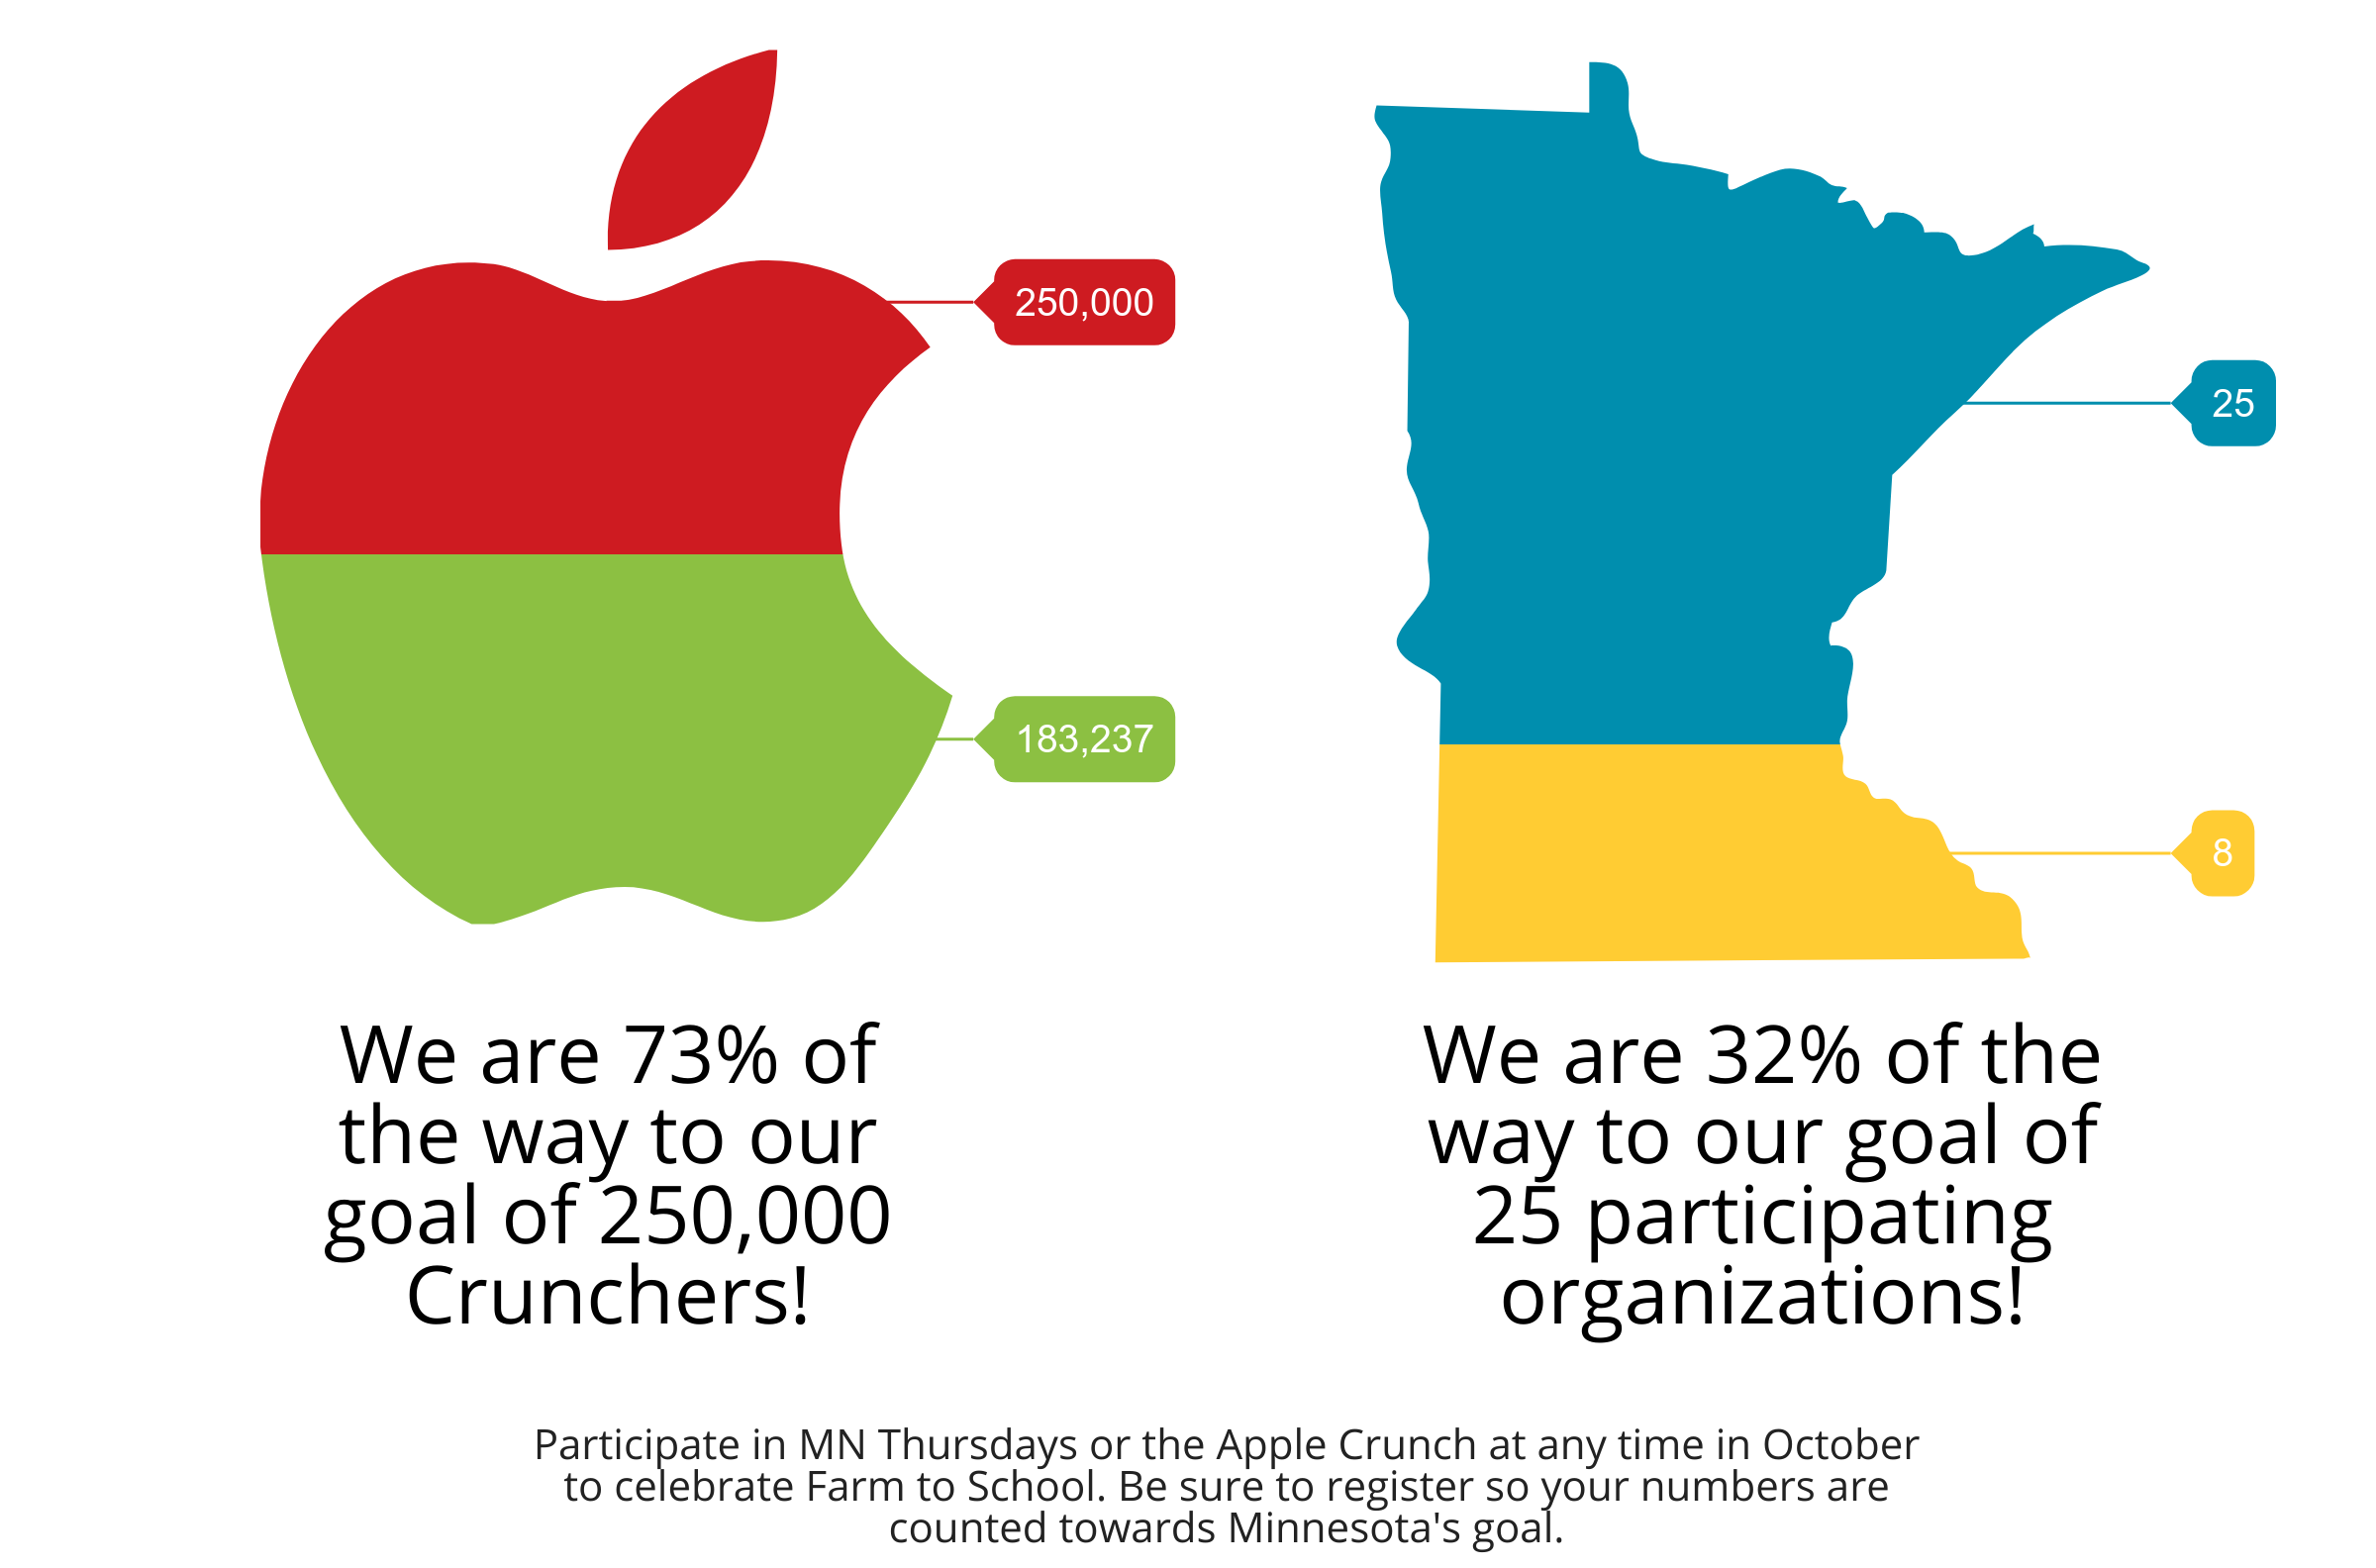 Great apple crunch graphic indicating progress towards goals